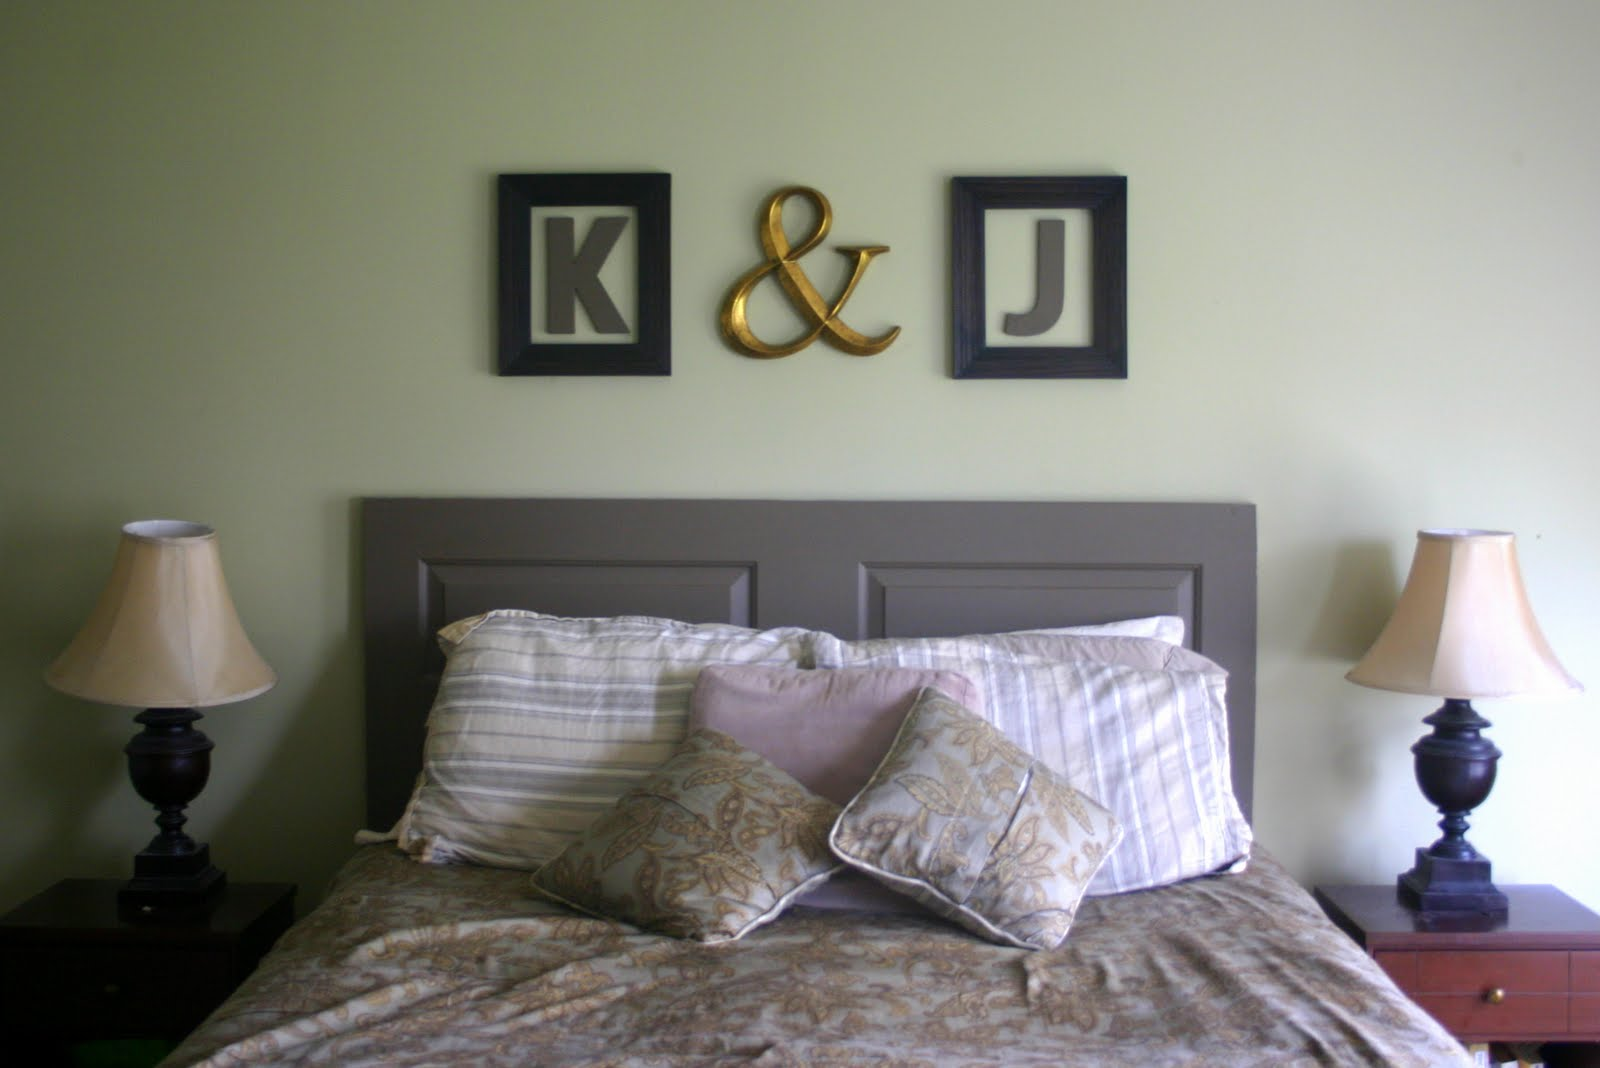 DIY Headboards - East Coast Creative Blog